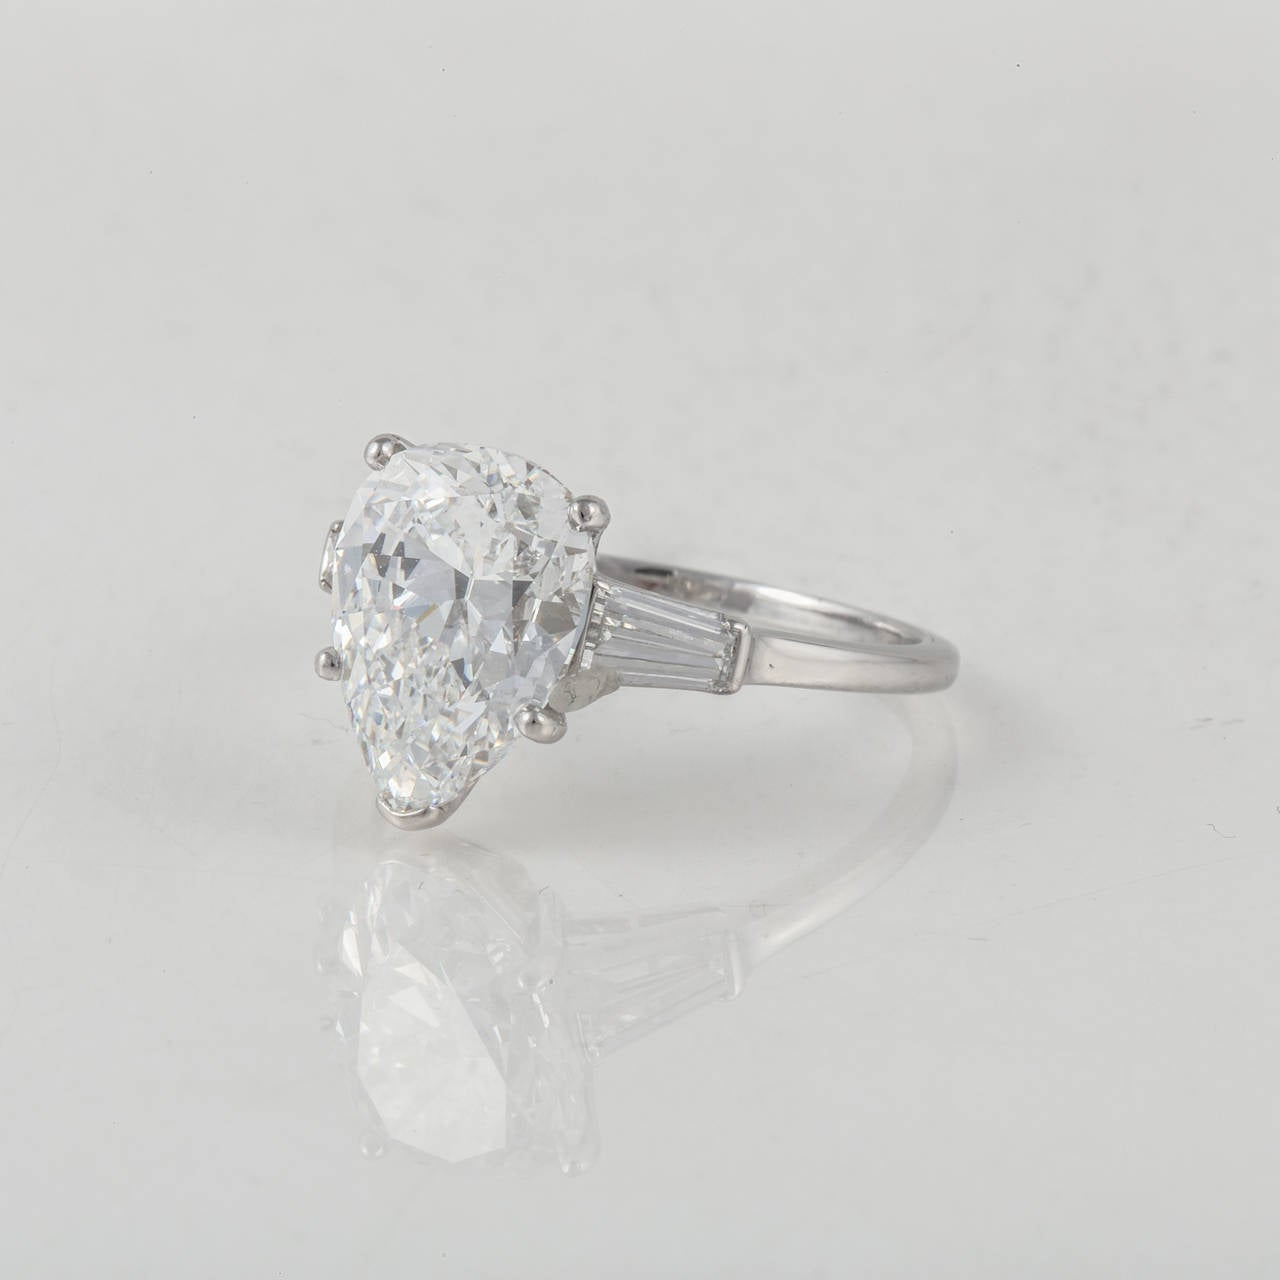 3 44 Carat Pear Shaped Diamond Platinum Engagement Ring For Sale at 1stdibs